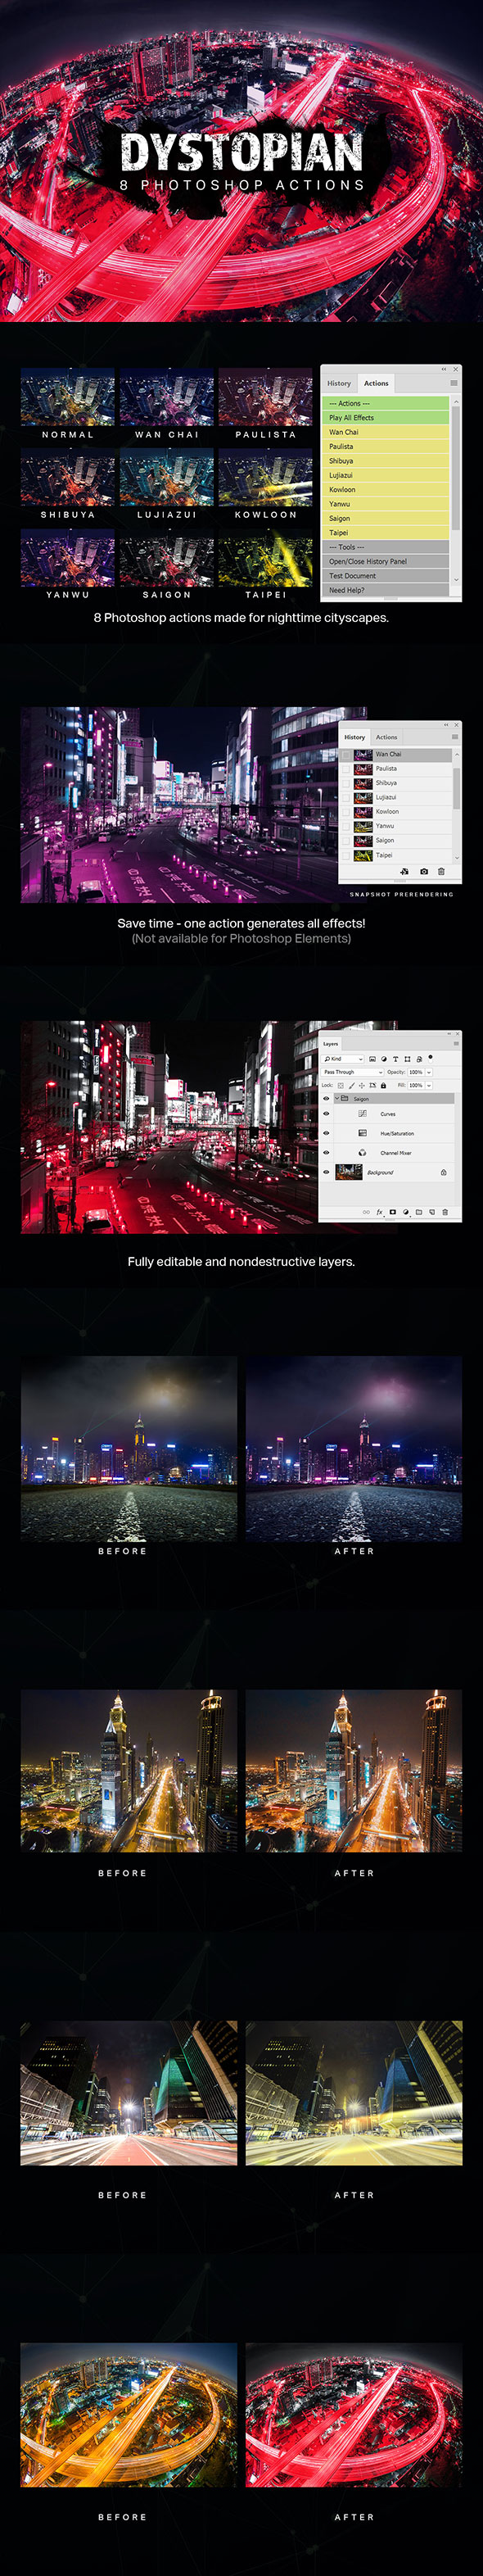 8 Dystopian Photoshop Actions - Photo Effects Actions